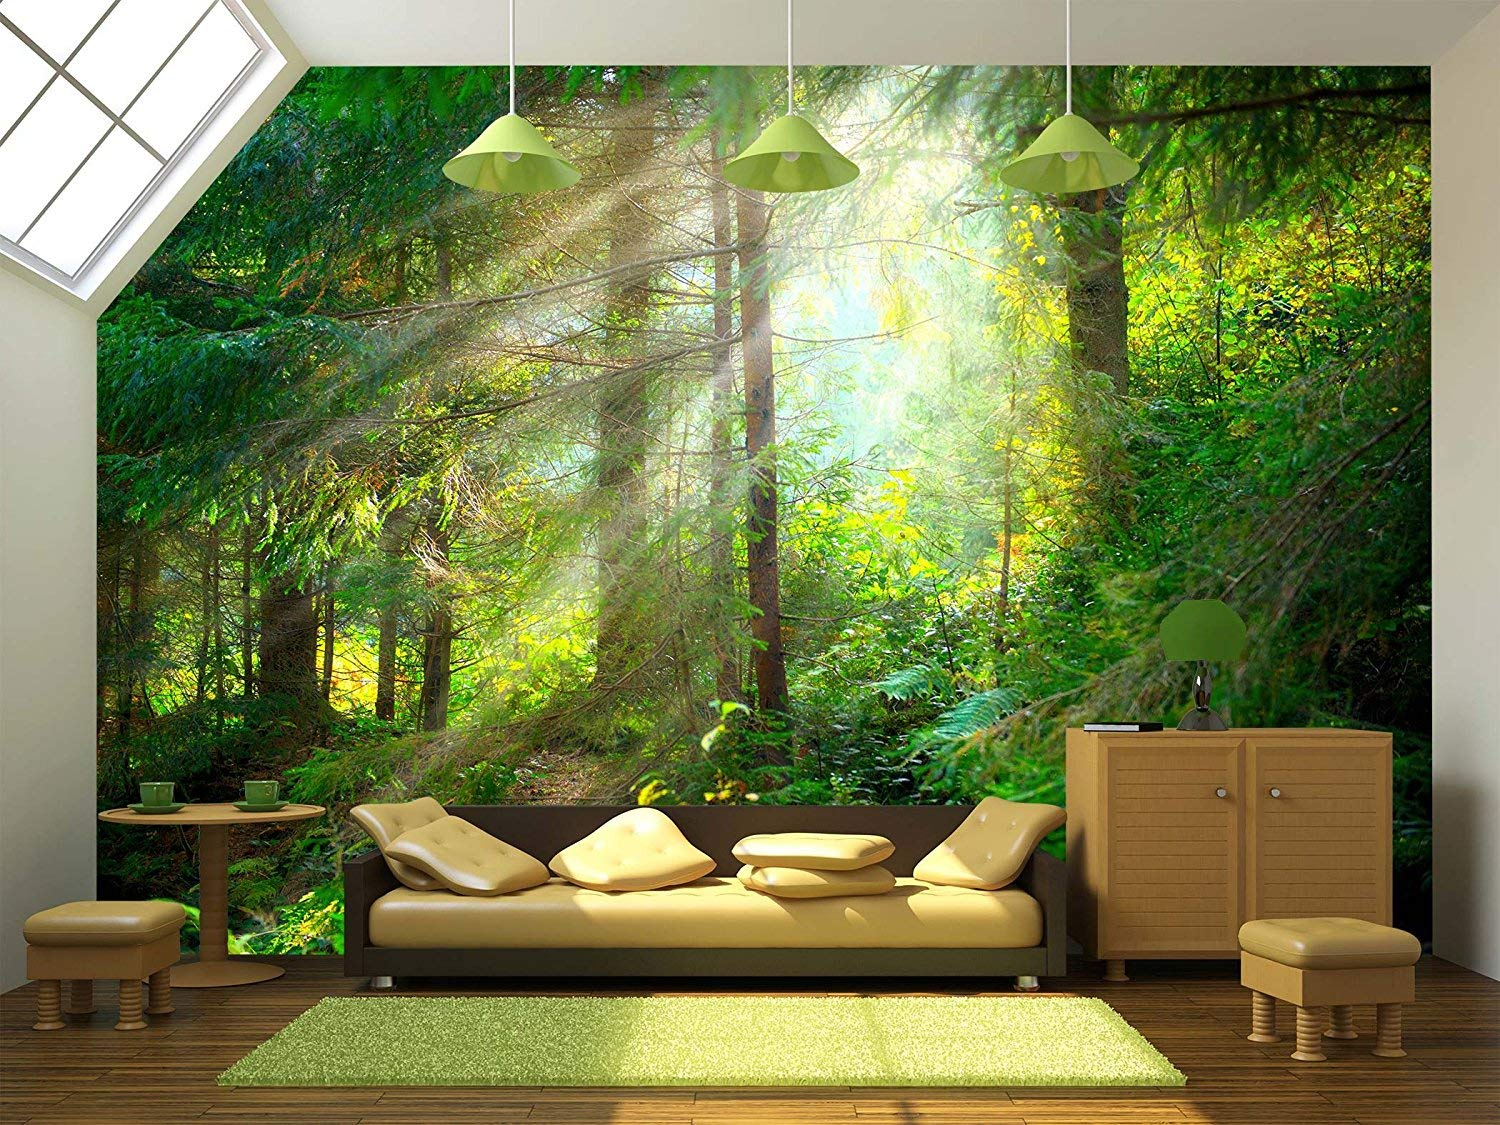 wall26 - Beautiful Forest Wallpaper- Canvas Art Wall Mural Decor - 100''x144'' by wall26 (Image #2)